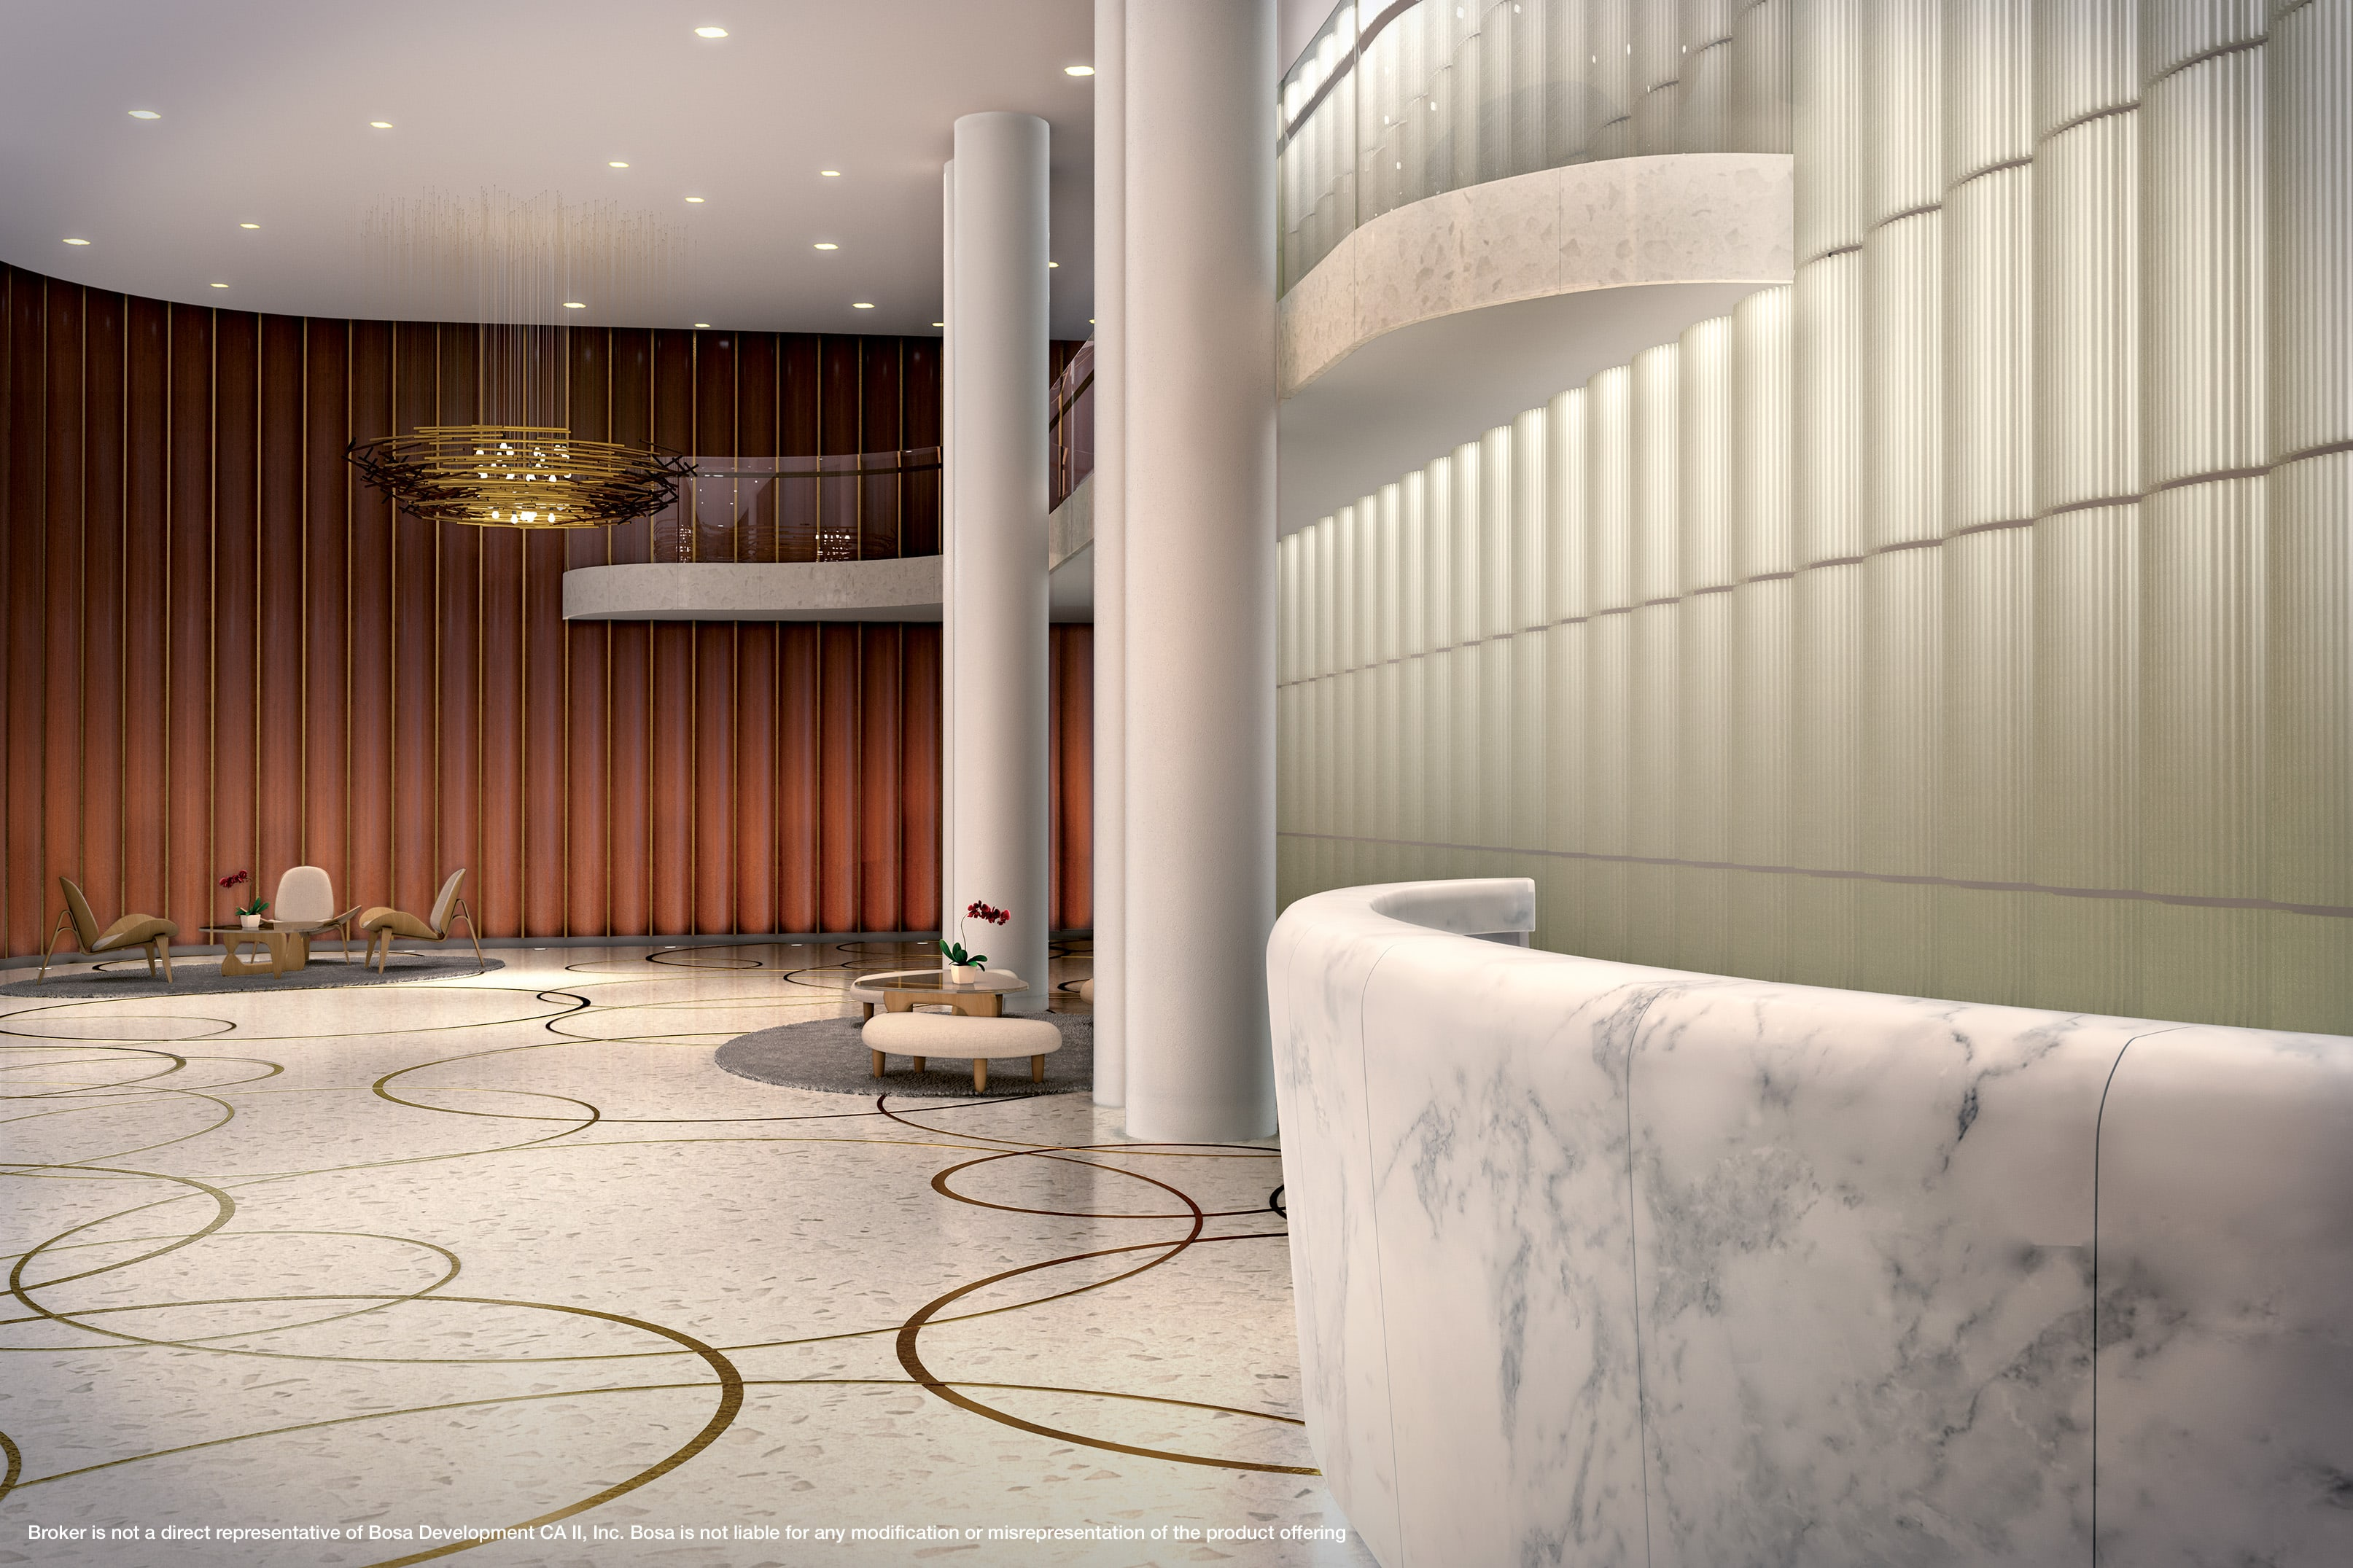 Pacific-Gate-lobby-super-prime-luxury-condos